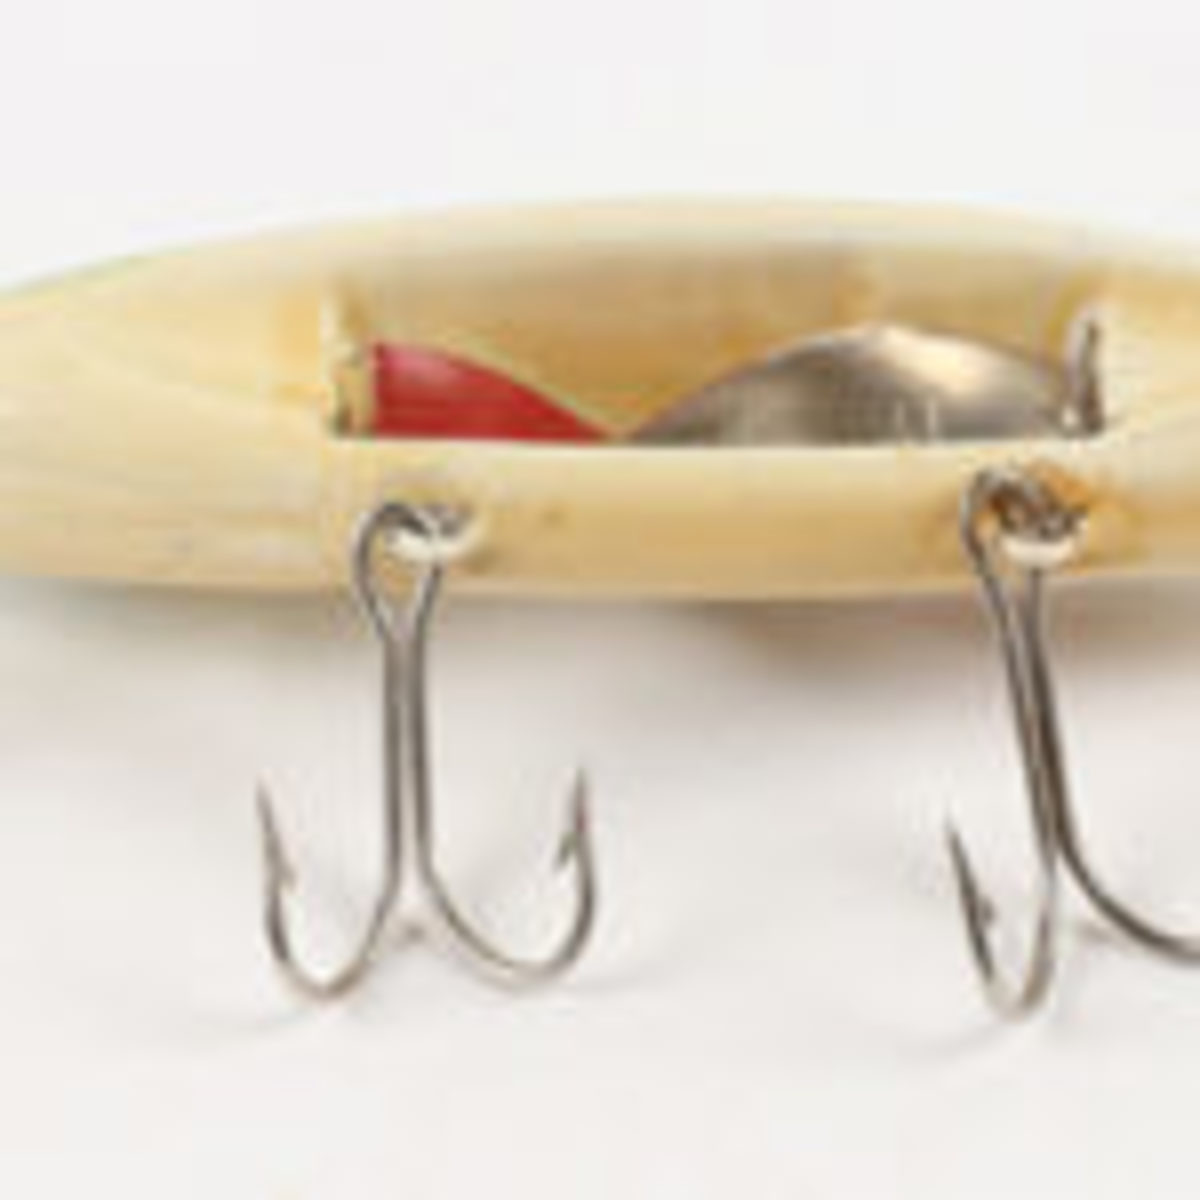 Chippewa spinner lure